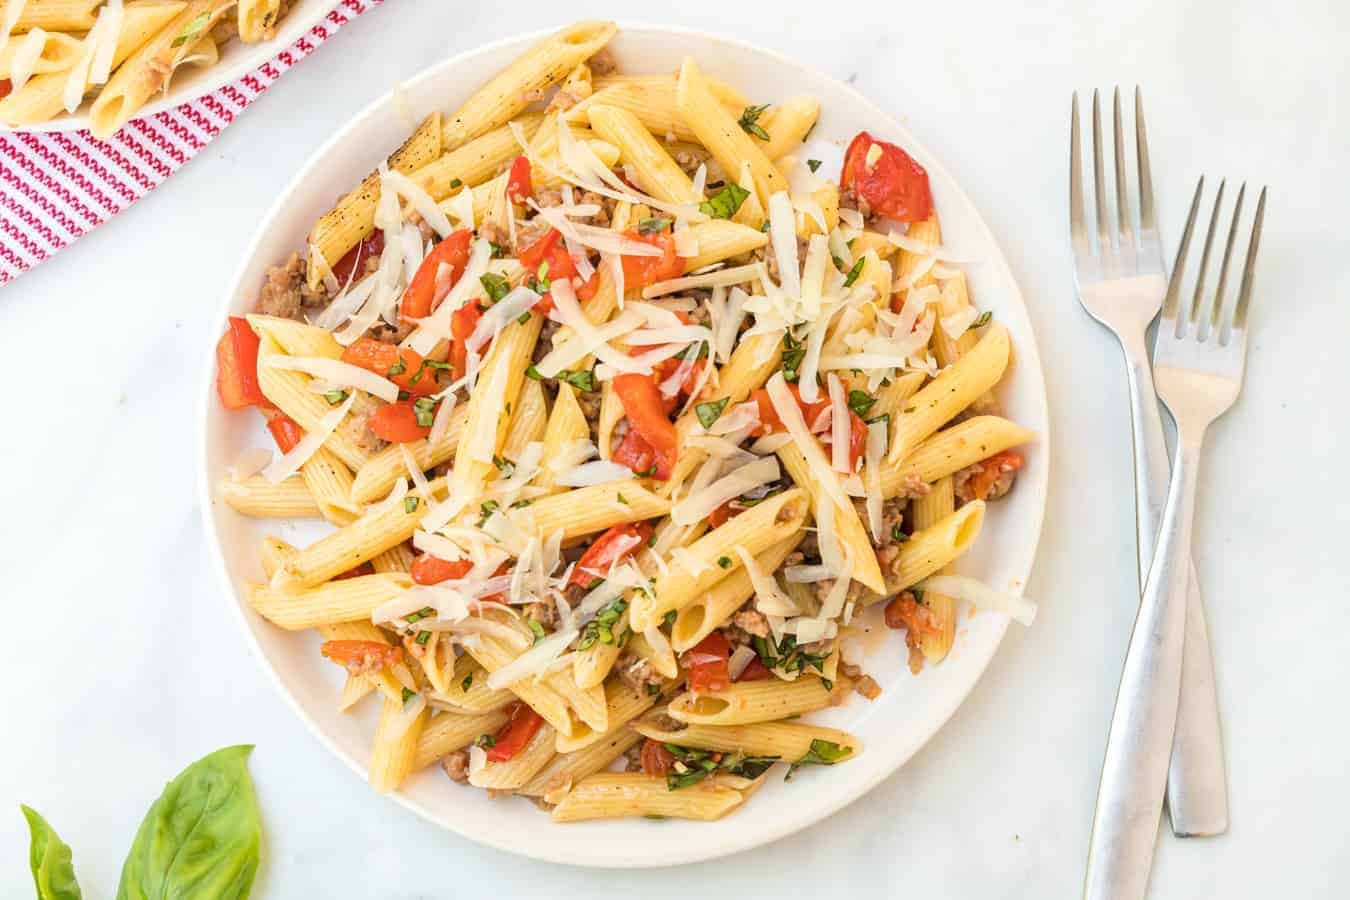 Image of a Plate of Roasted Tomato & Sausage Pasta